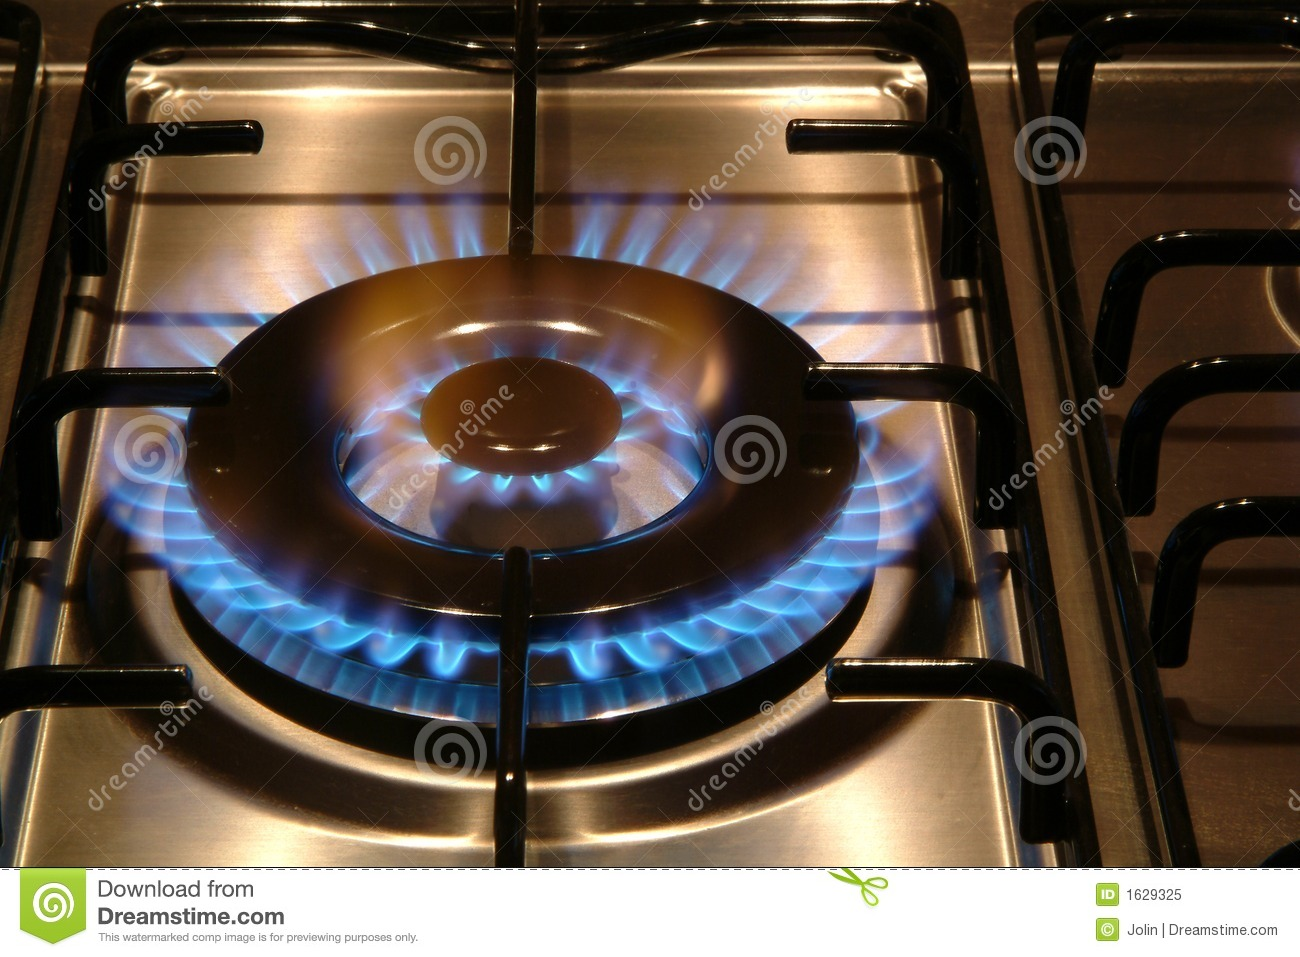 Gas Stove Burning Royalty Free Stock Photo - Image: 1629325